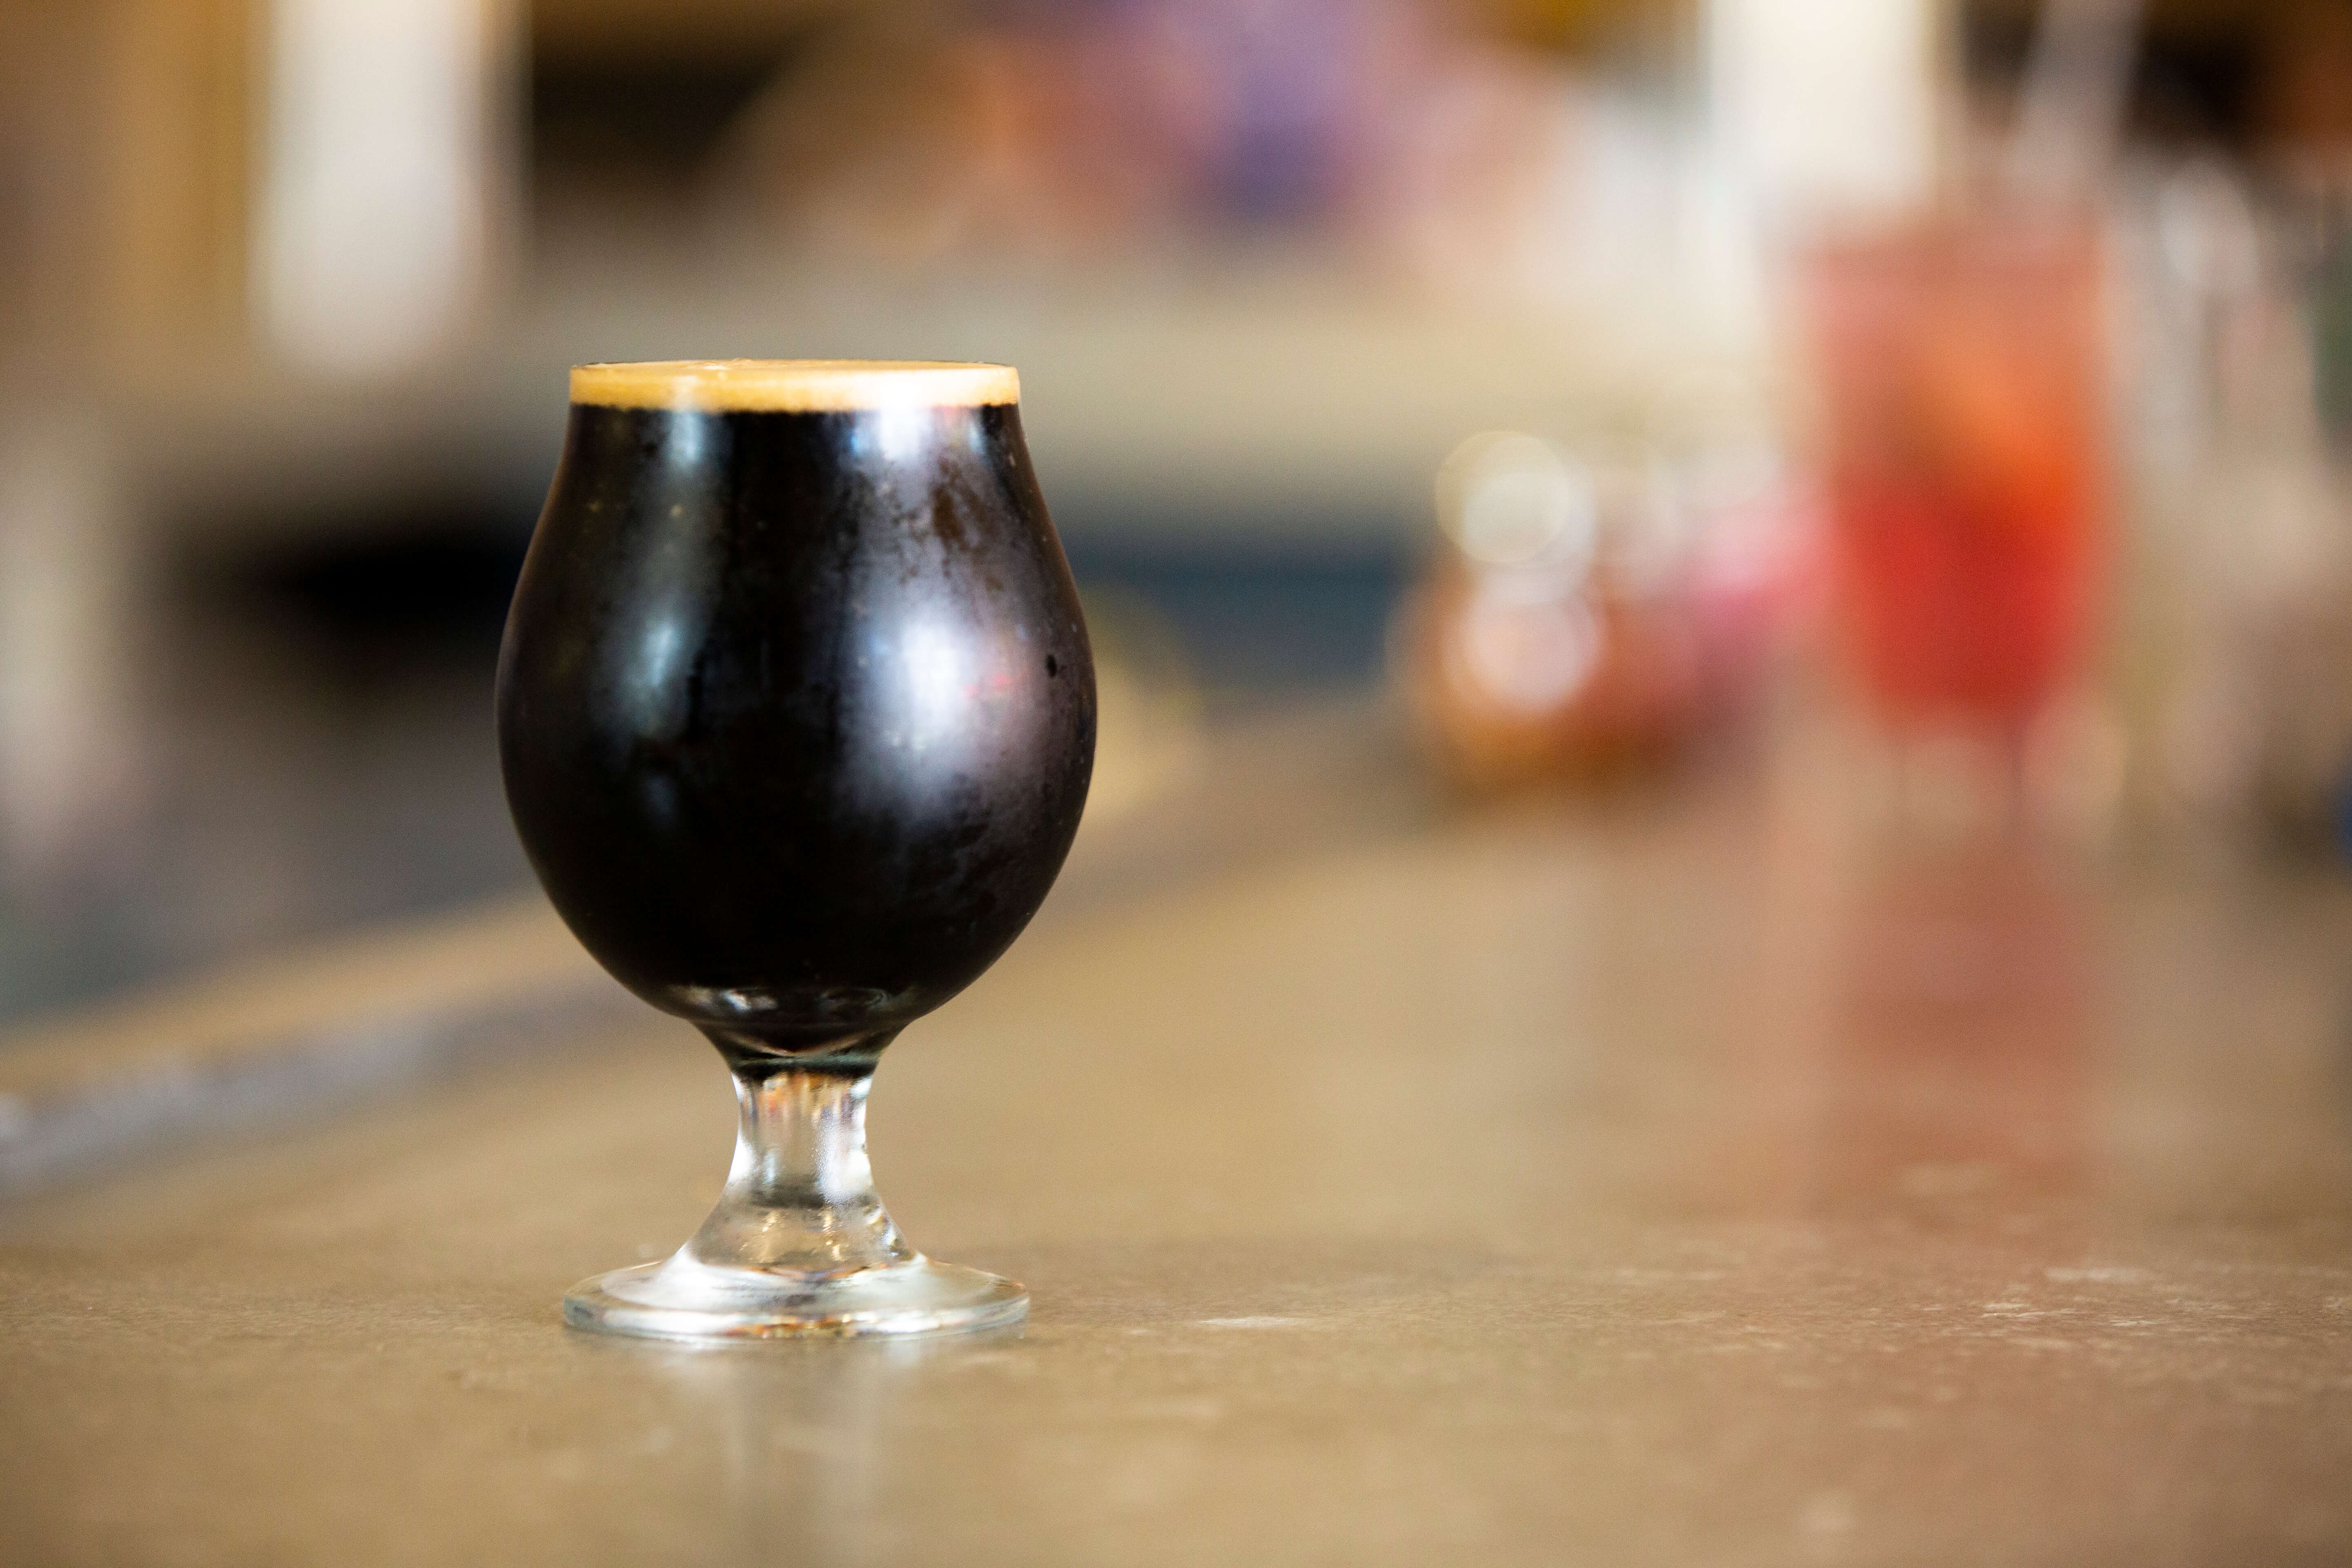 Dark beer in glass on counter